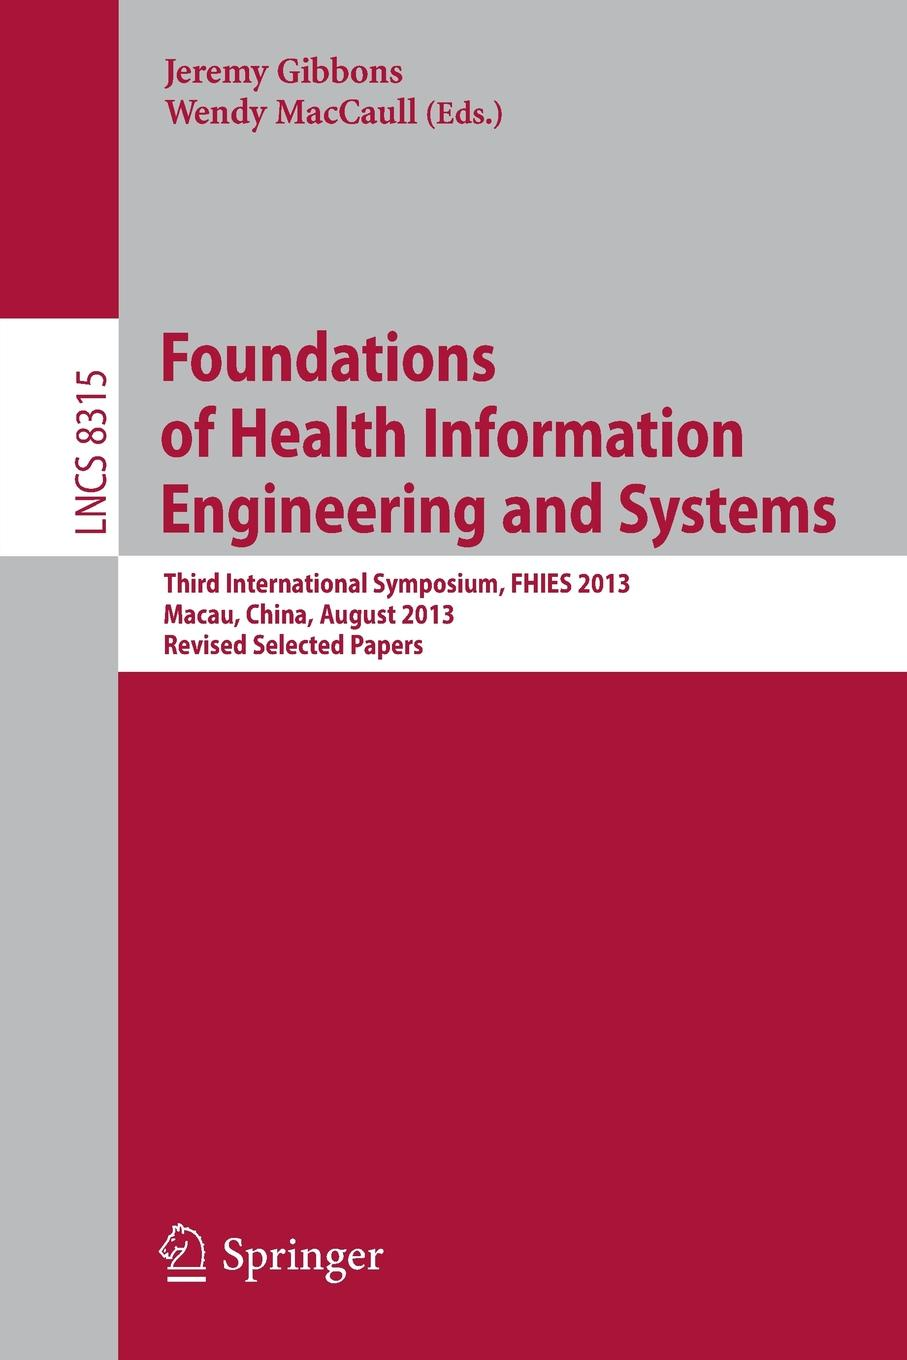 Foundations of Health Information Engineering and Systems Third International Symposium FHIES 2013 Macau China August 21-23 2013 Revised Selected Papers